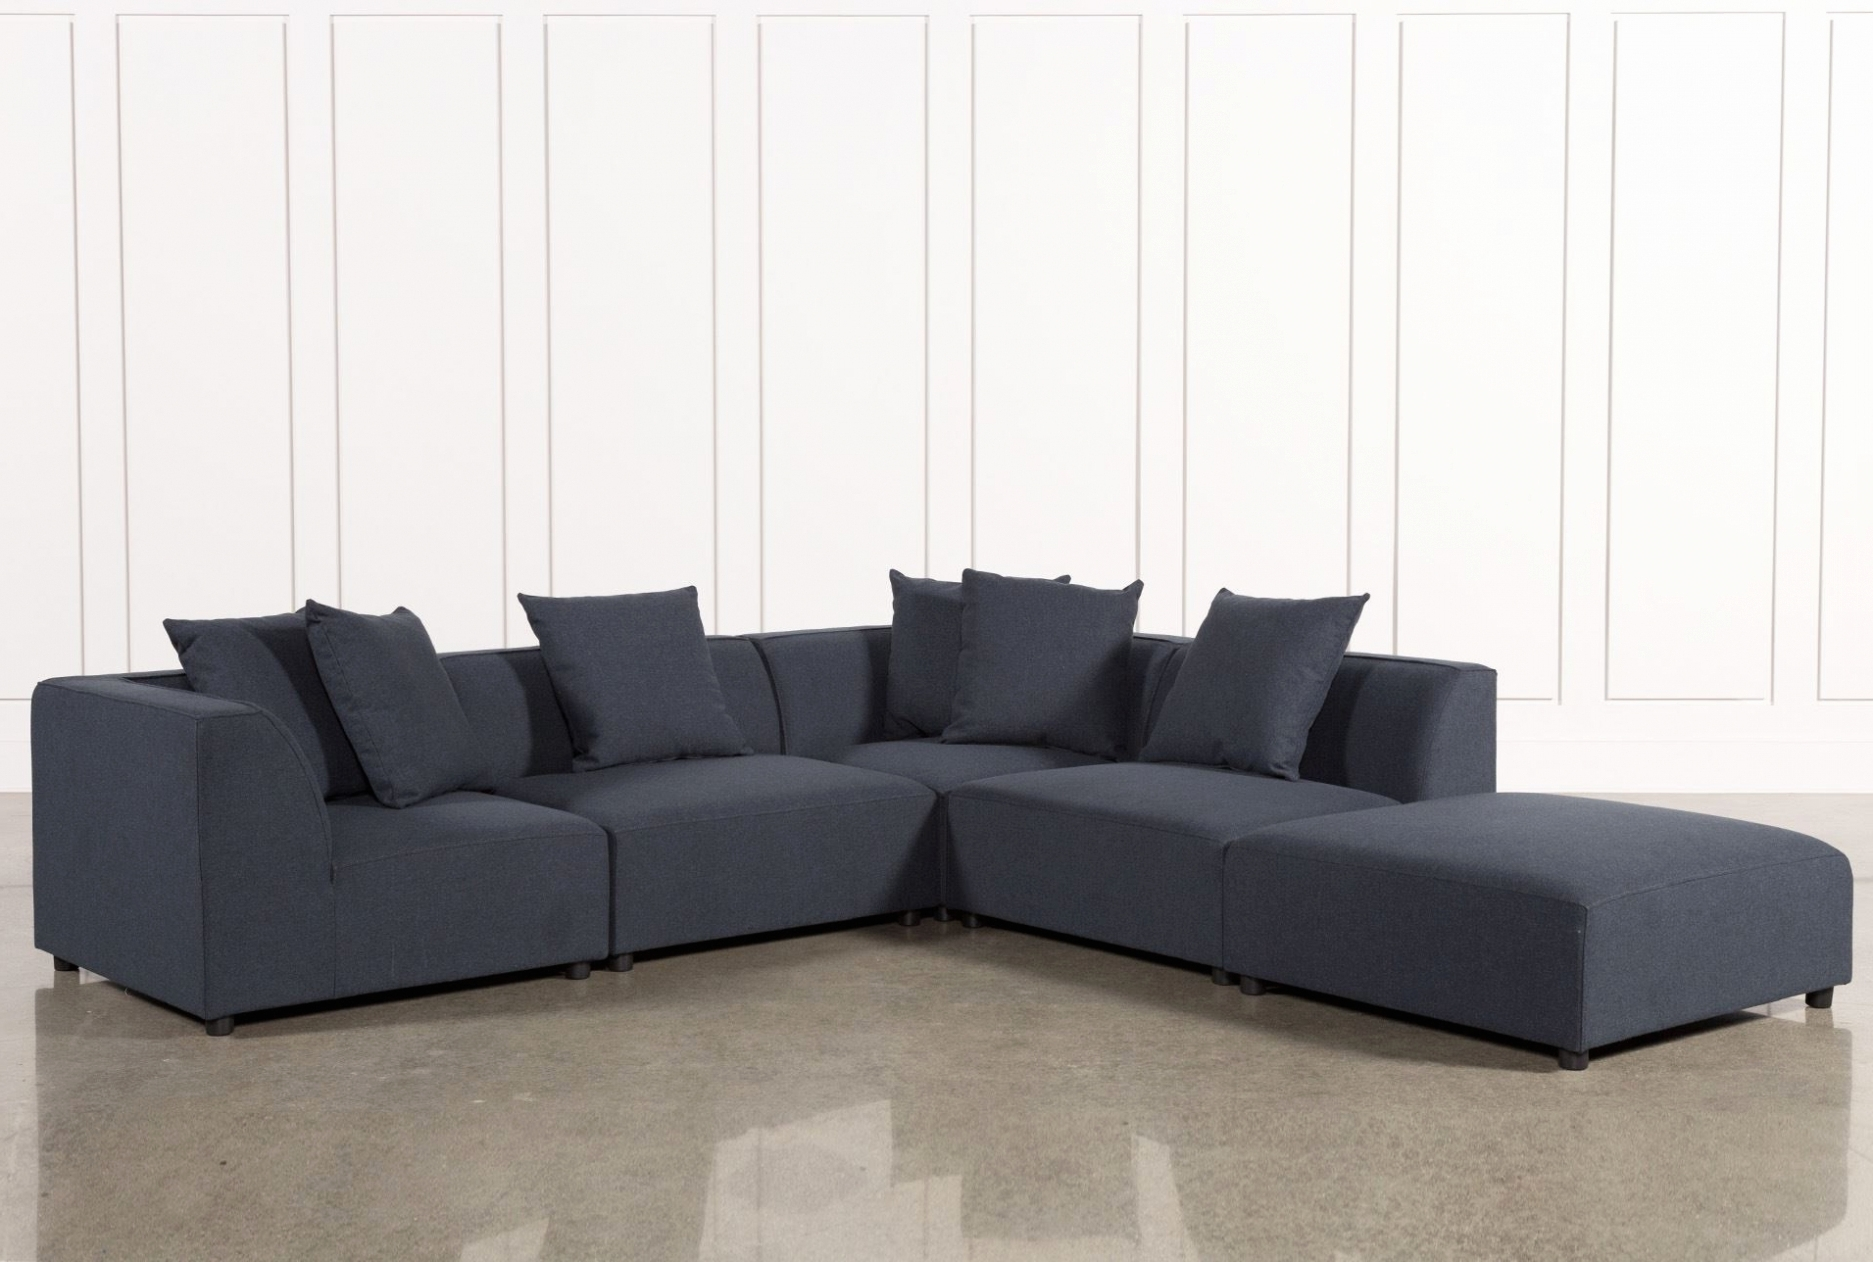 Living Spaces Sectional Sofas With Widely Used Furniture: Lovely 5 Piece Sectional Sofa With Chaise (View 13 of 20)